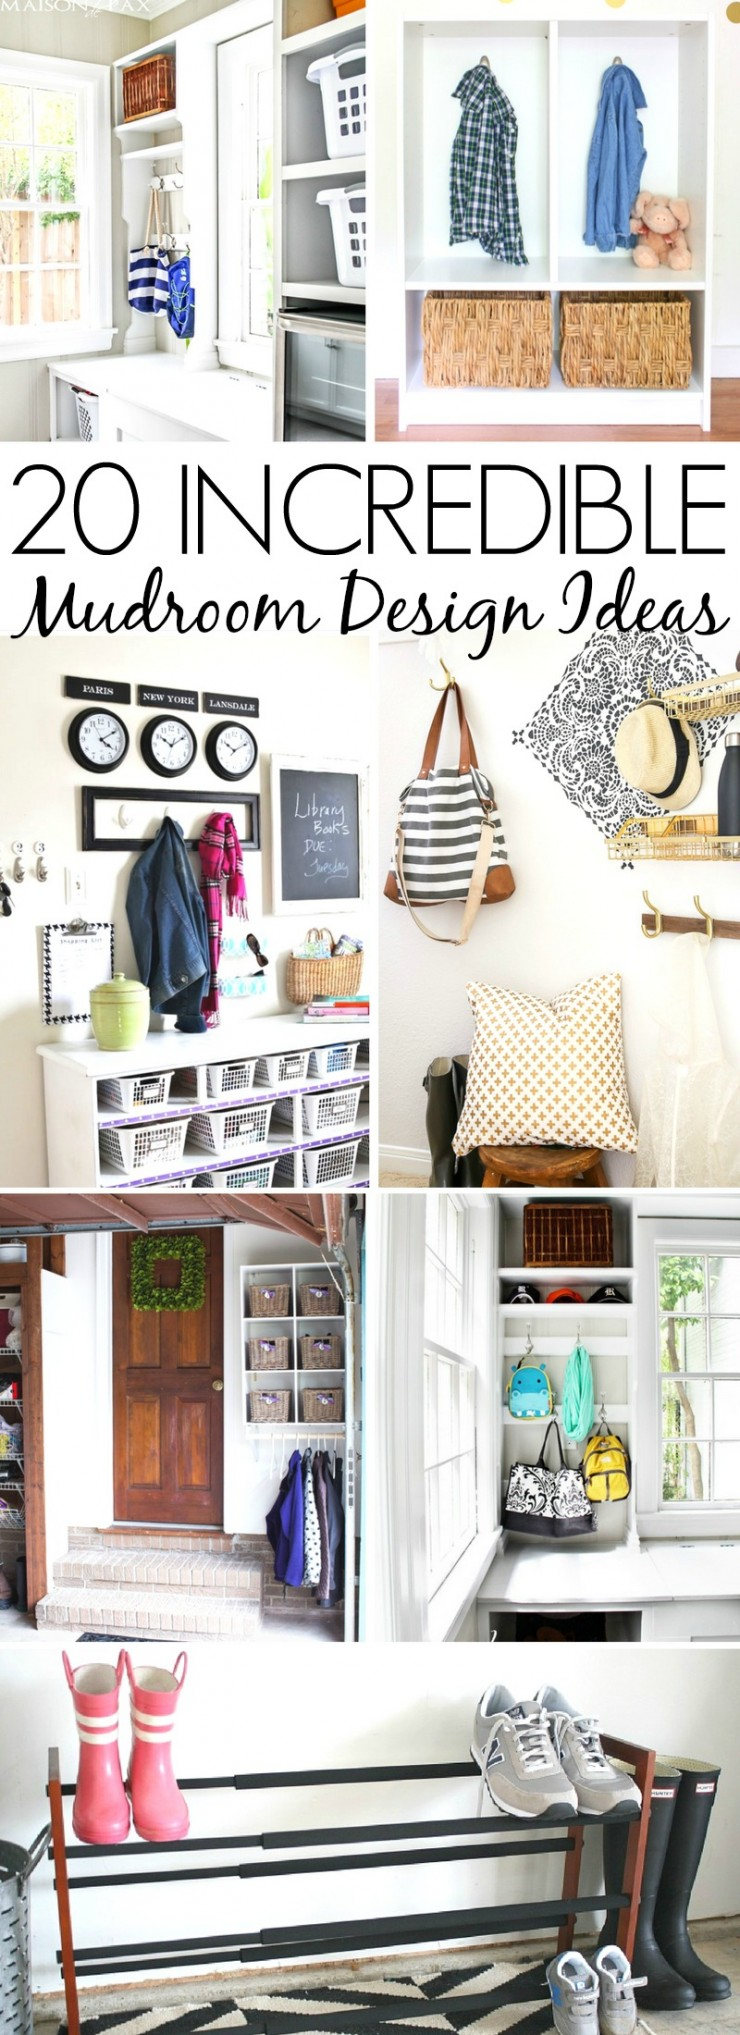 These 20 Incredible Mudroom Design Ideas will inspire you to create your own beautiful and organized entry space. Great home organization and home decor ideas here!